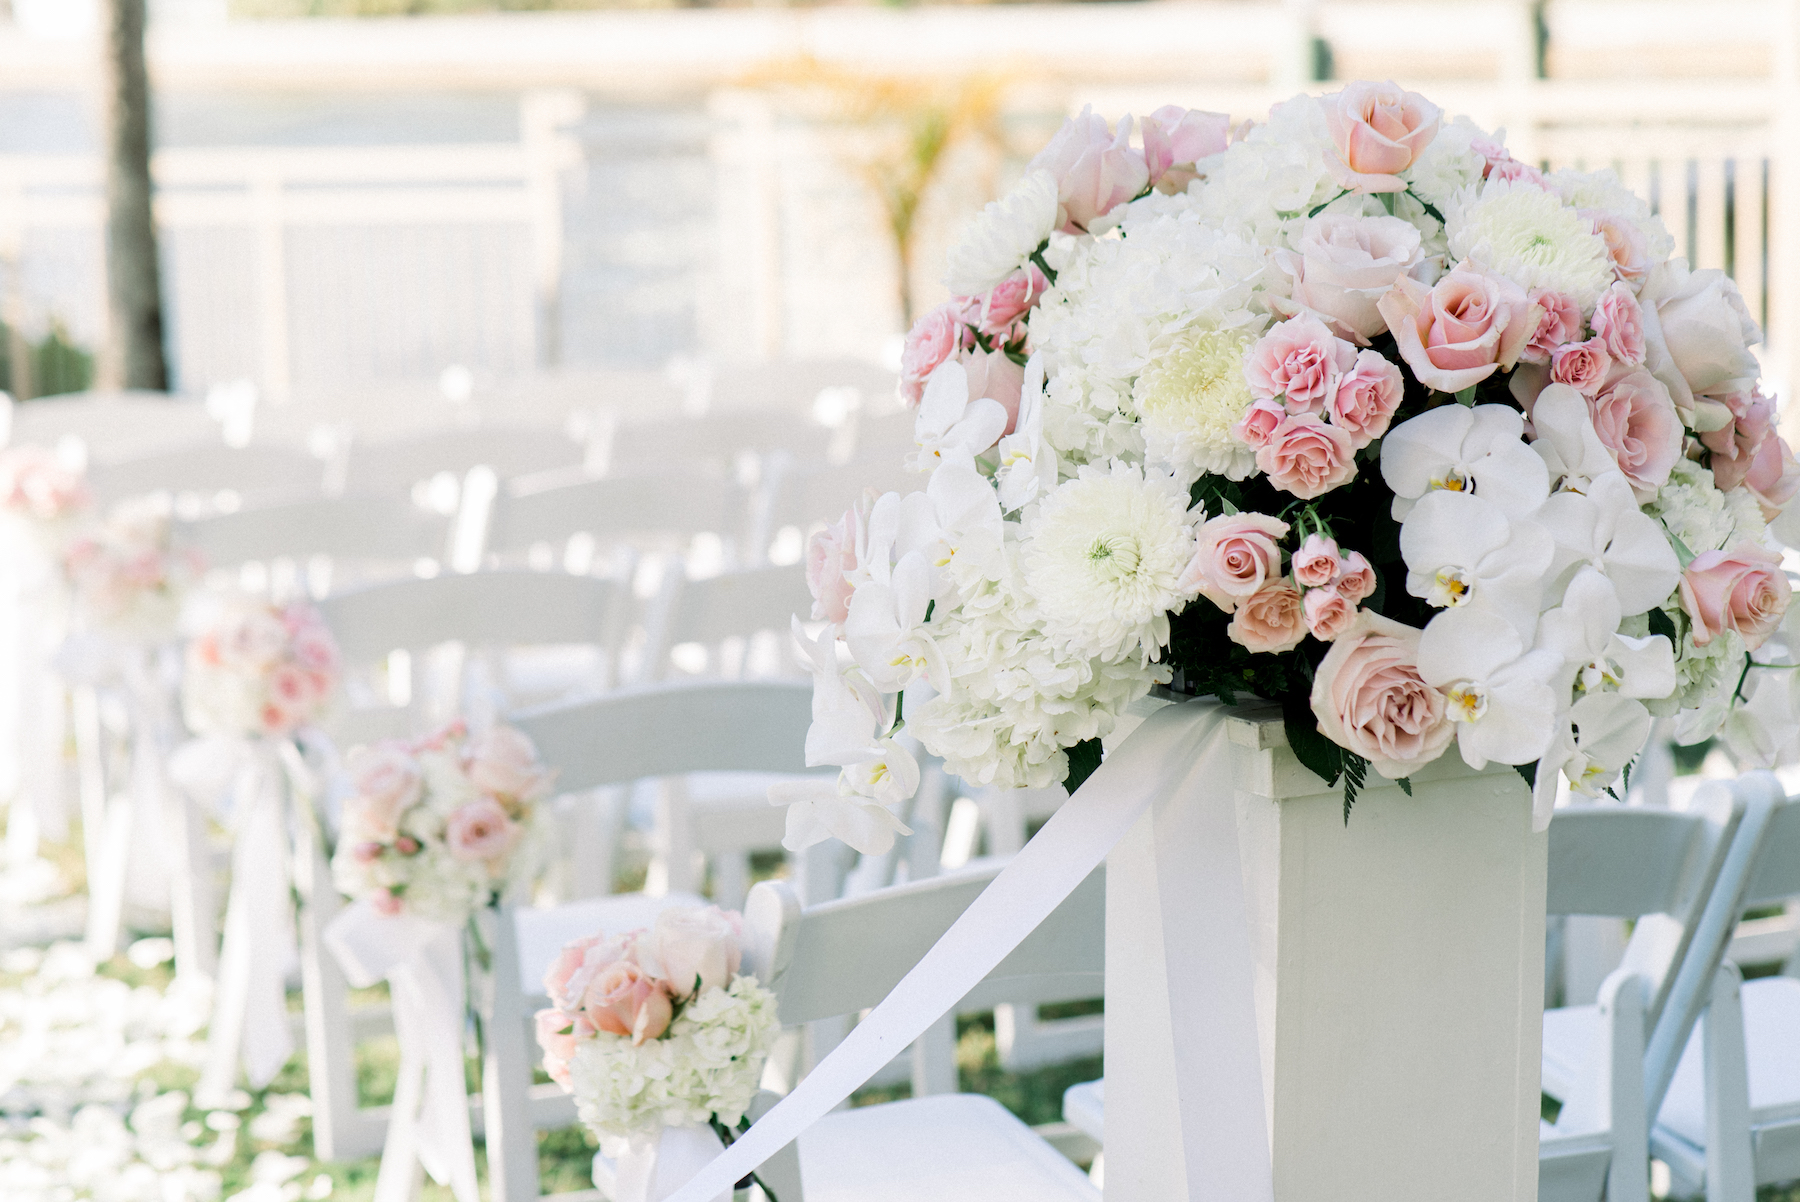 Classic Elegant Wedding Ceremony Decor, White Pedestal with Blush Pink Roses, White Orchids and White Dahlia Floral Arrangement | Tampa Wedding Planner Special Moments Event Planning